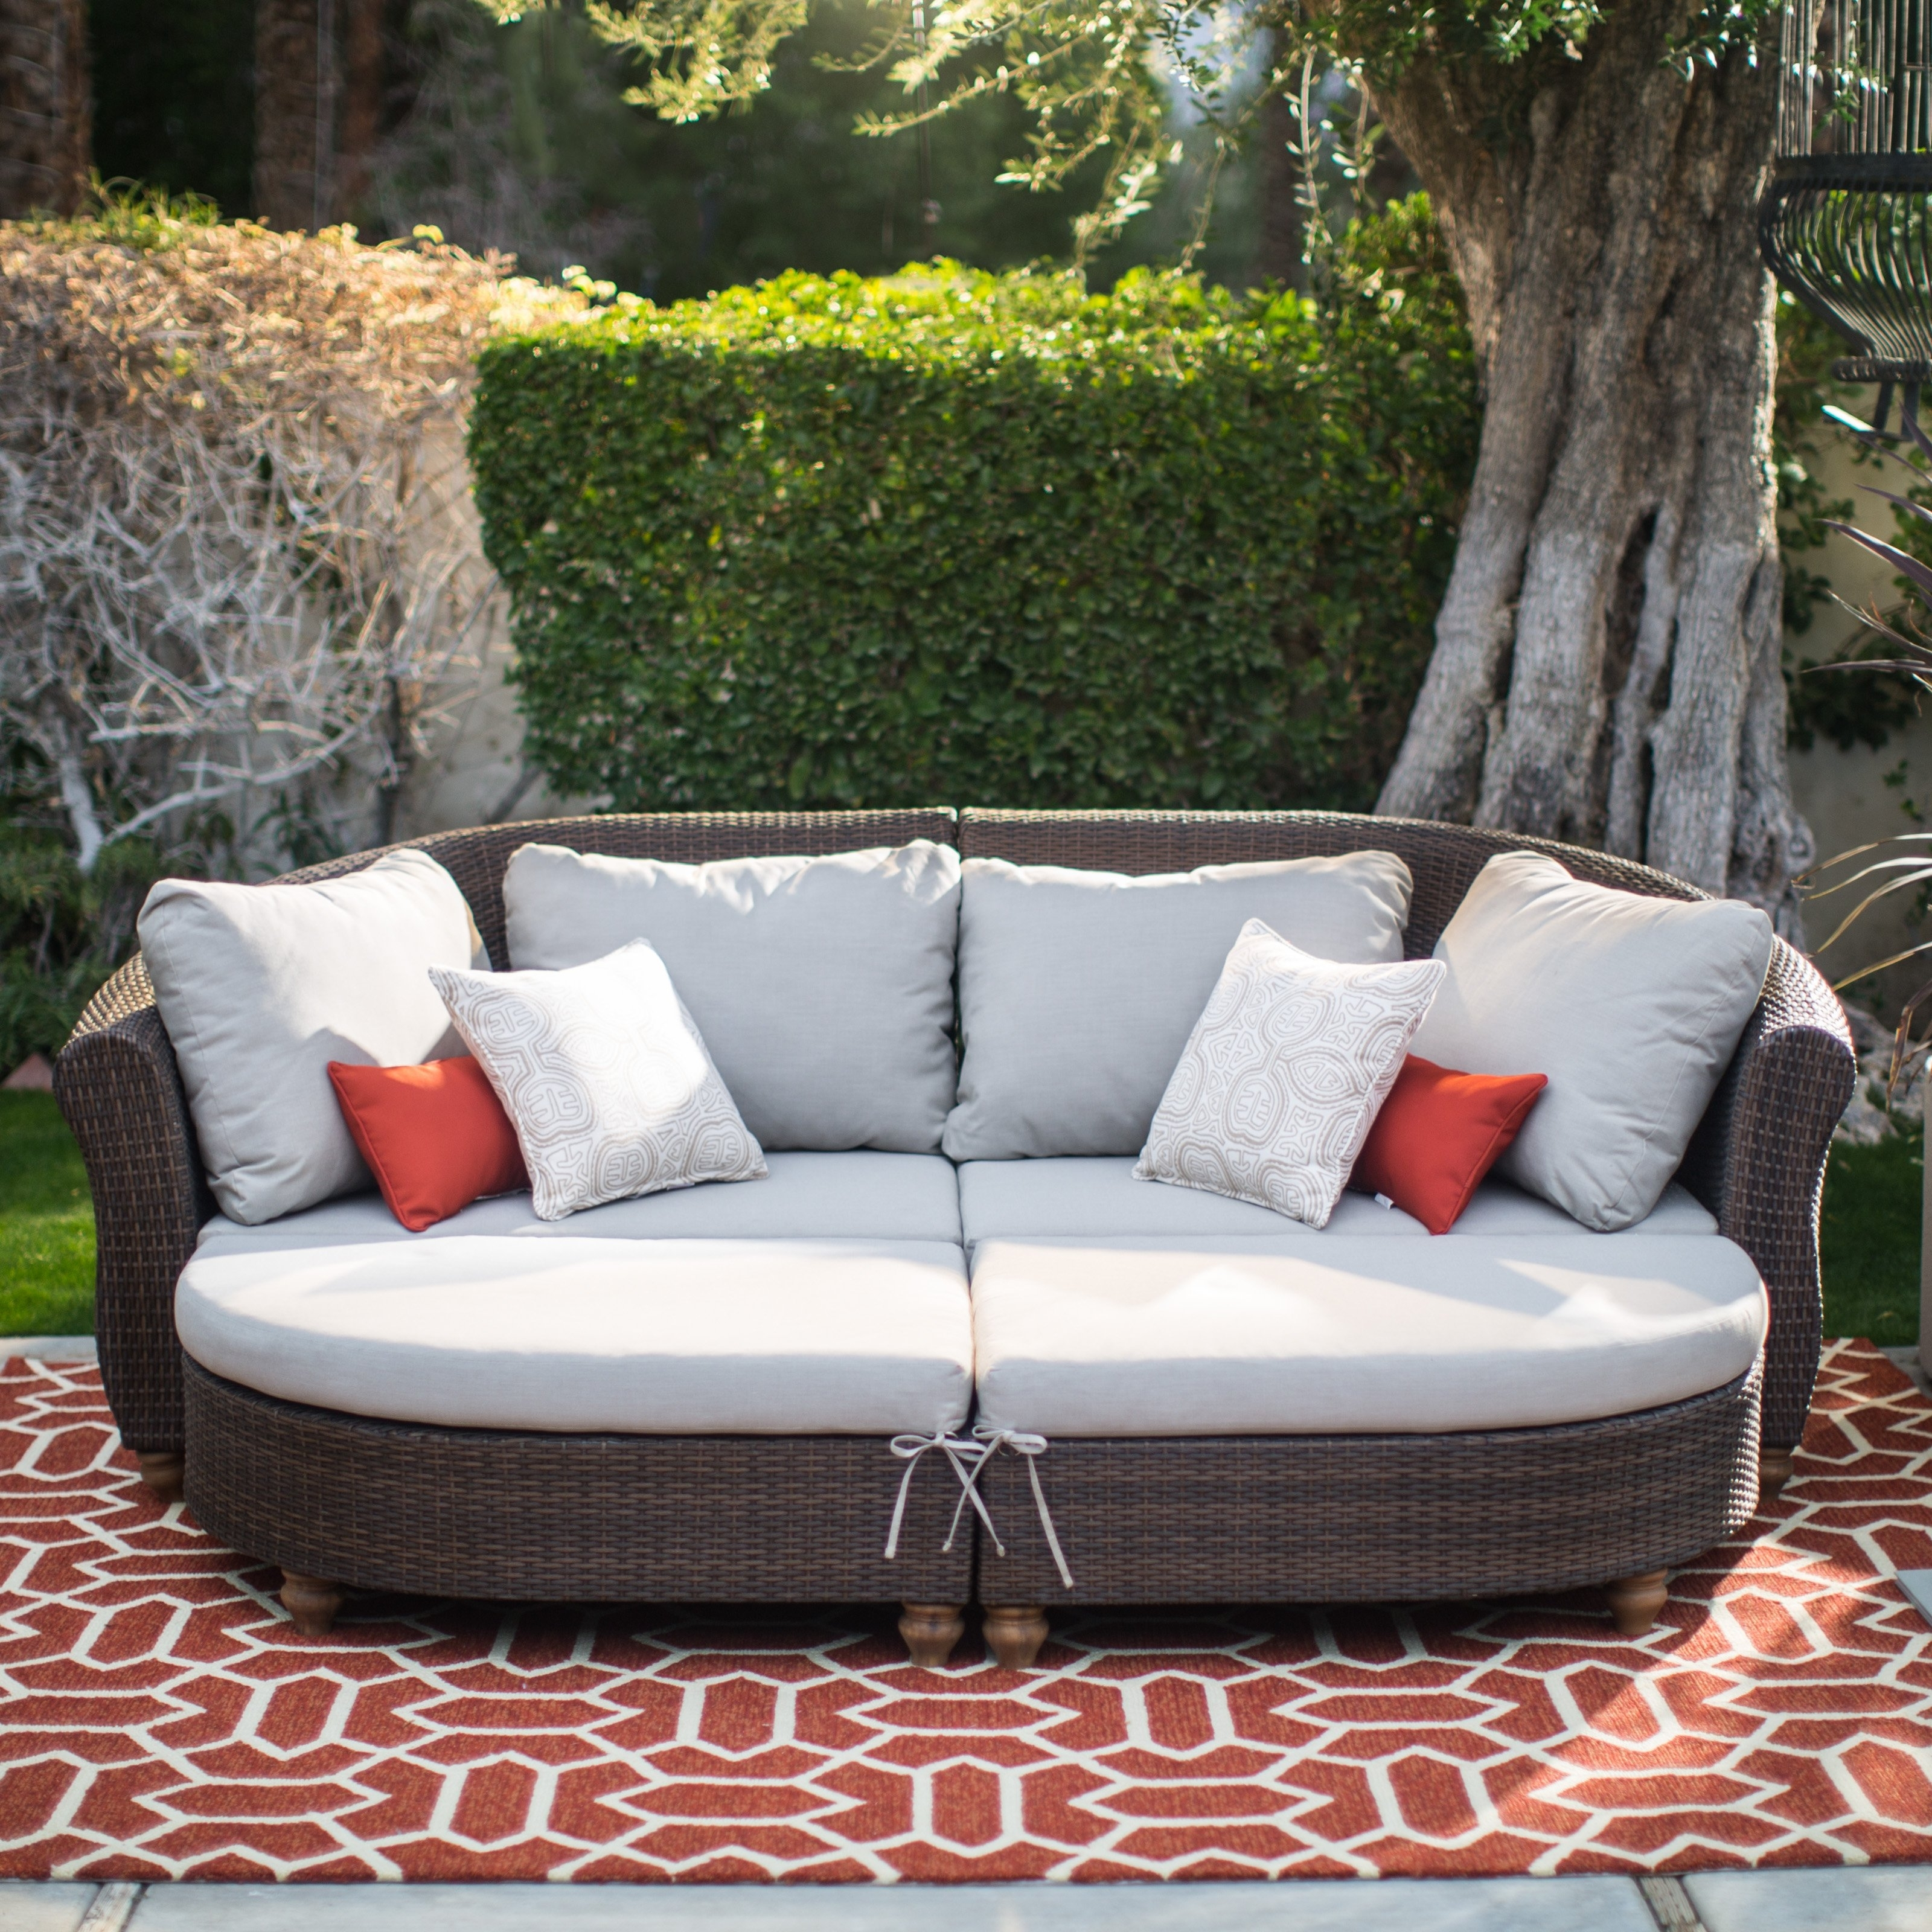 Target Patio Furniture Conversation Sets In Most Recent Chair : Outdoor Wicker Resin Piece Sectional Sofa Patio Furniture (View 10 of 15)